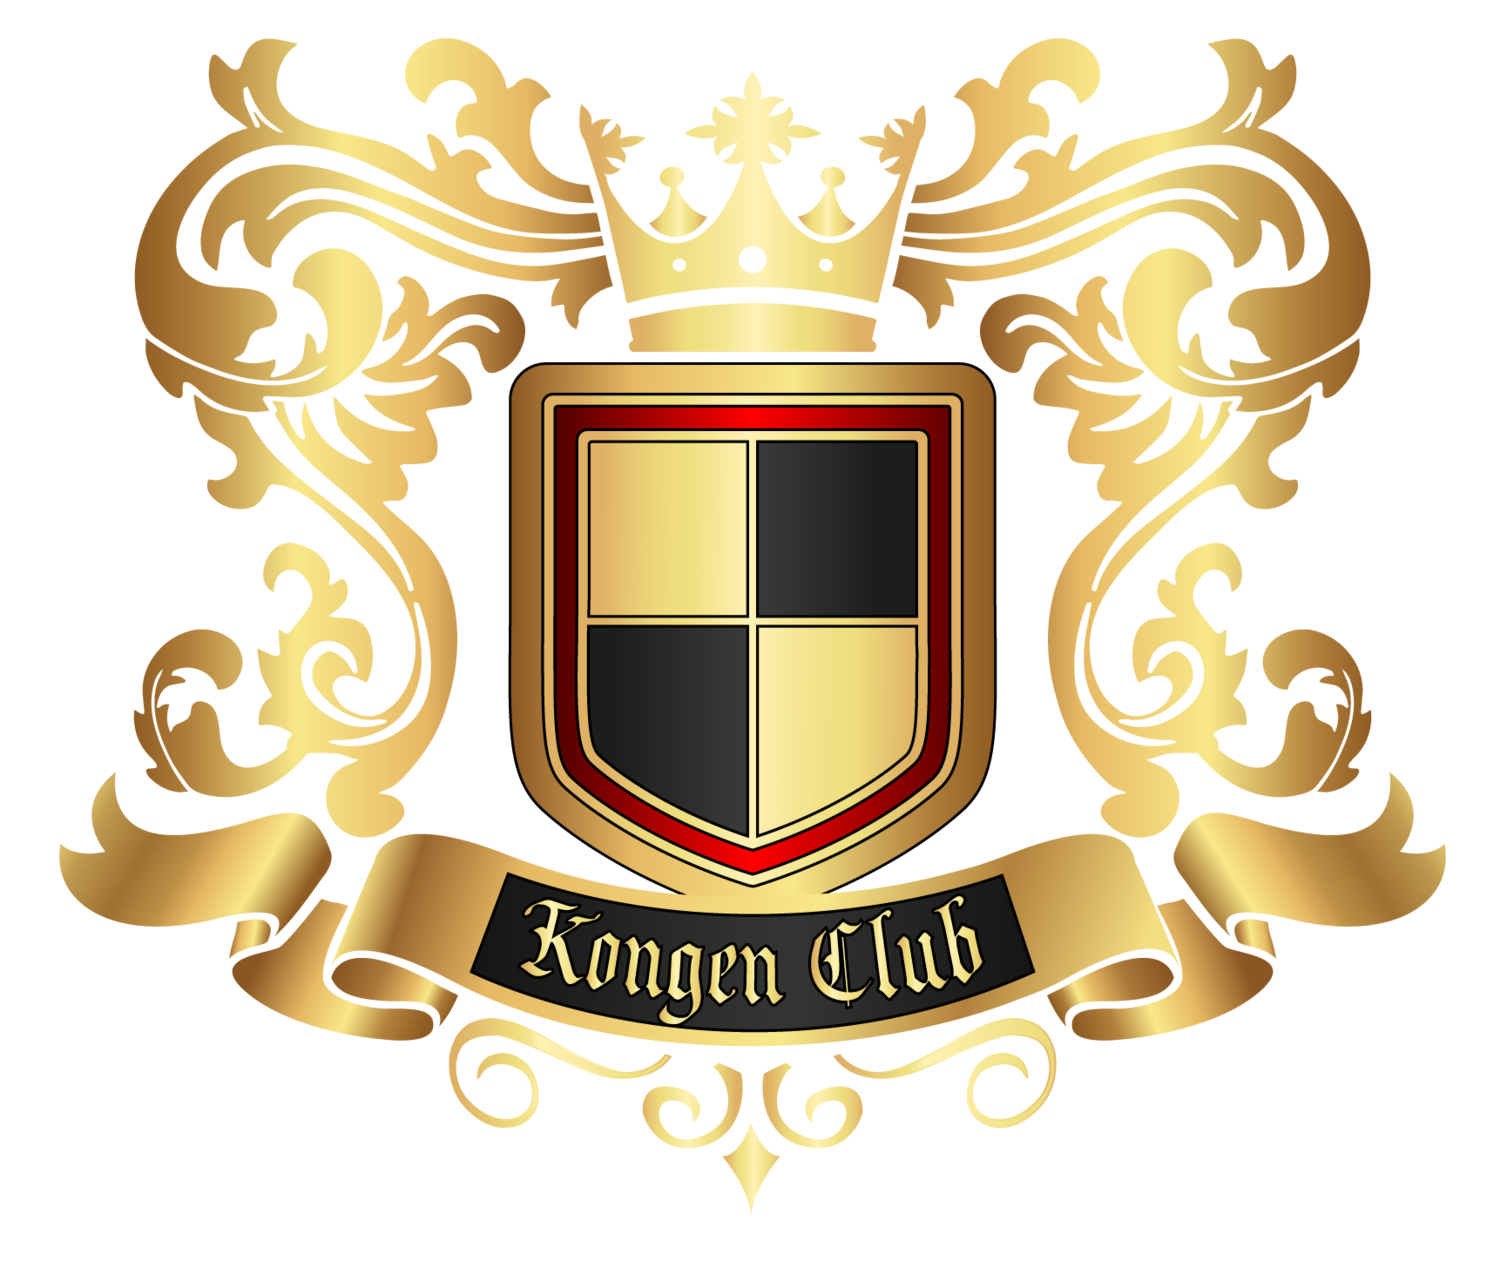 Kongen Club - Intellectual games club